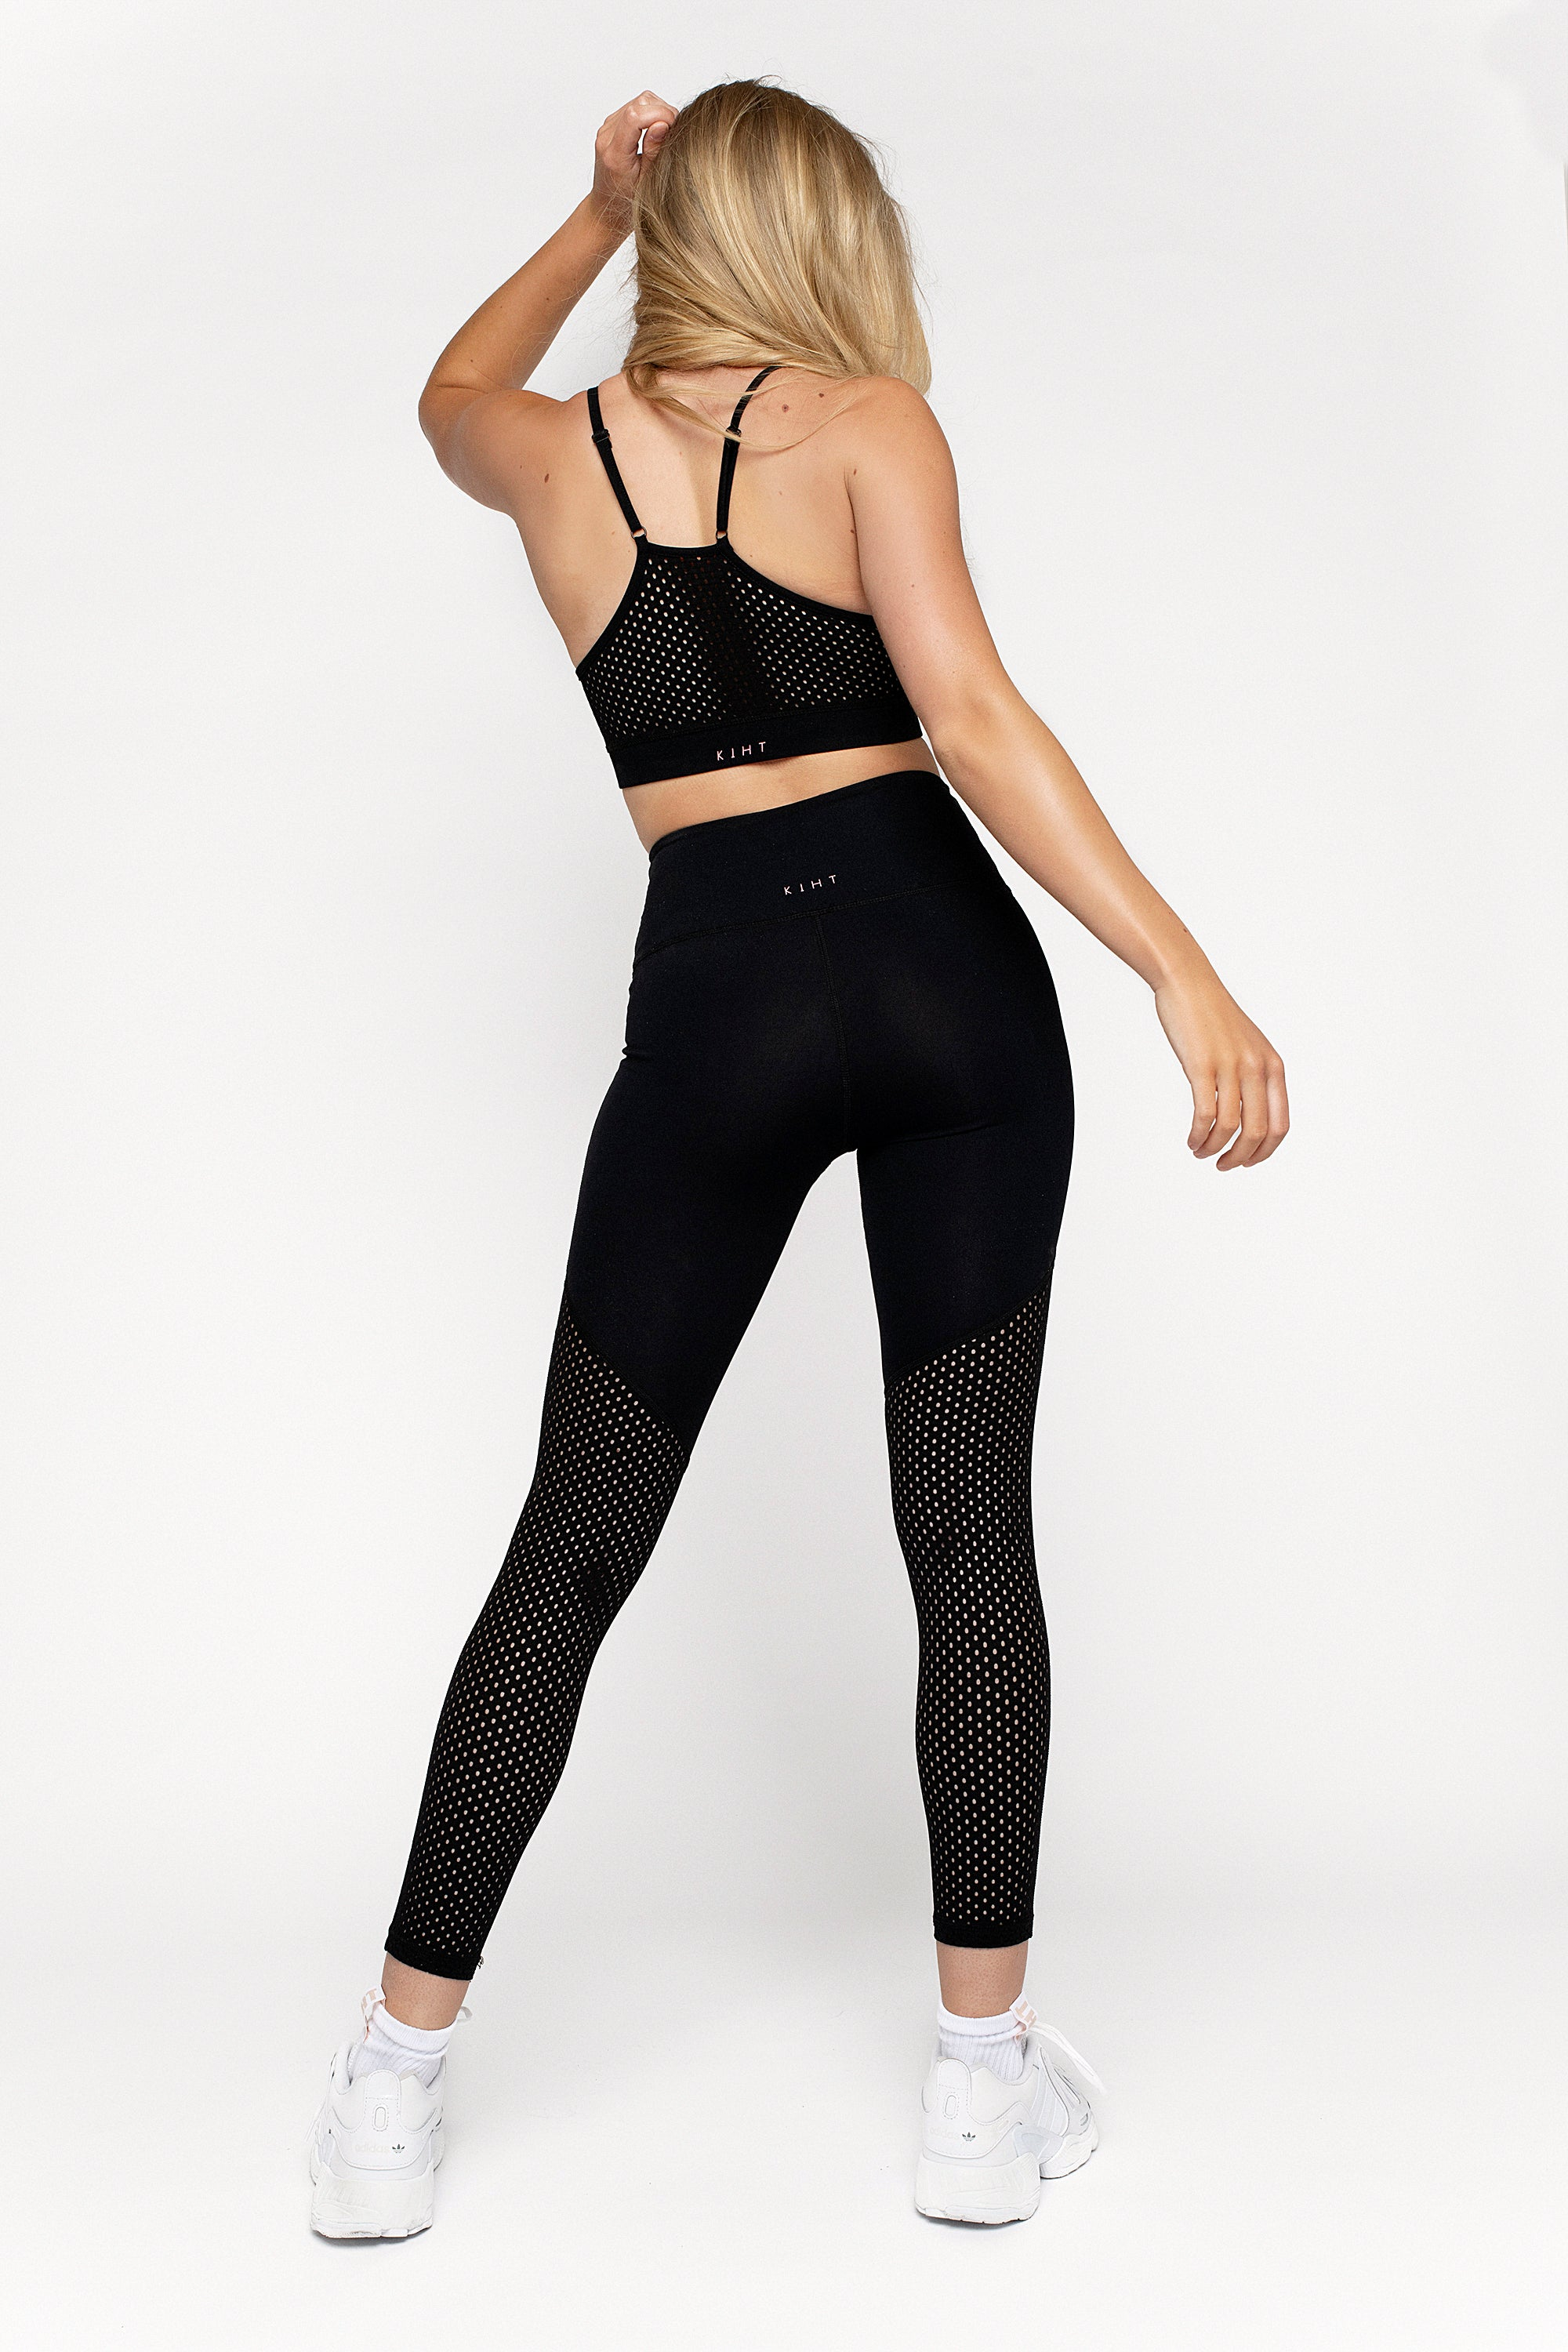 UK Ethical activewear High waisted black gym legging with punched panel back detail on the legs Angled flattering seams on the front and back compressive flattering fit